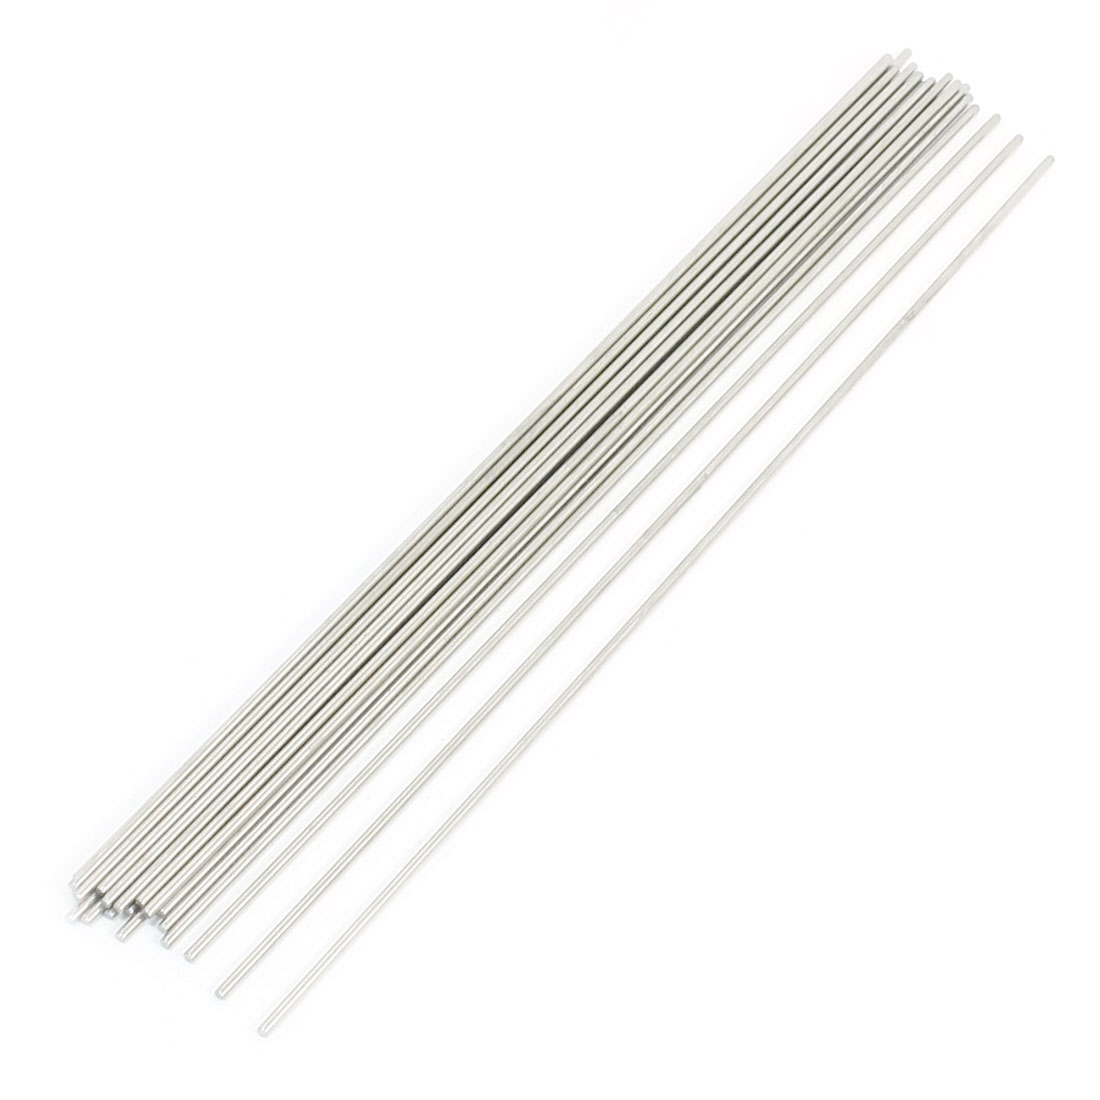 20Pcs RC Airplane Hardware Tool Stainless Steel Round Rod 250mm x 2mm